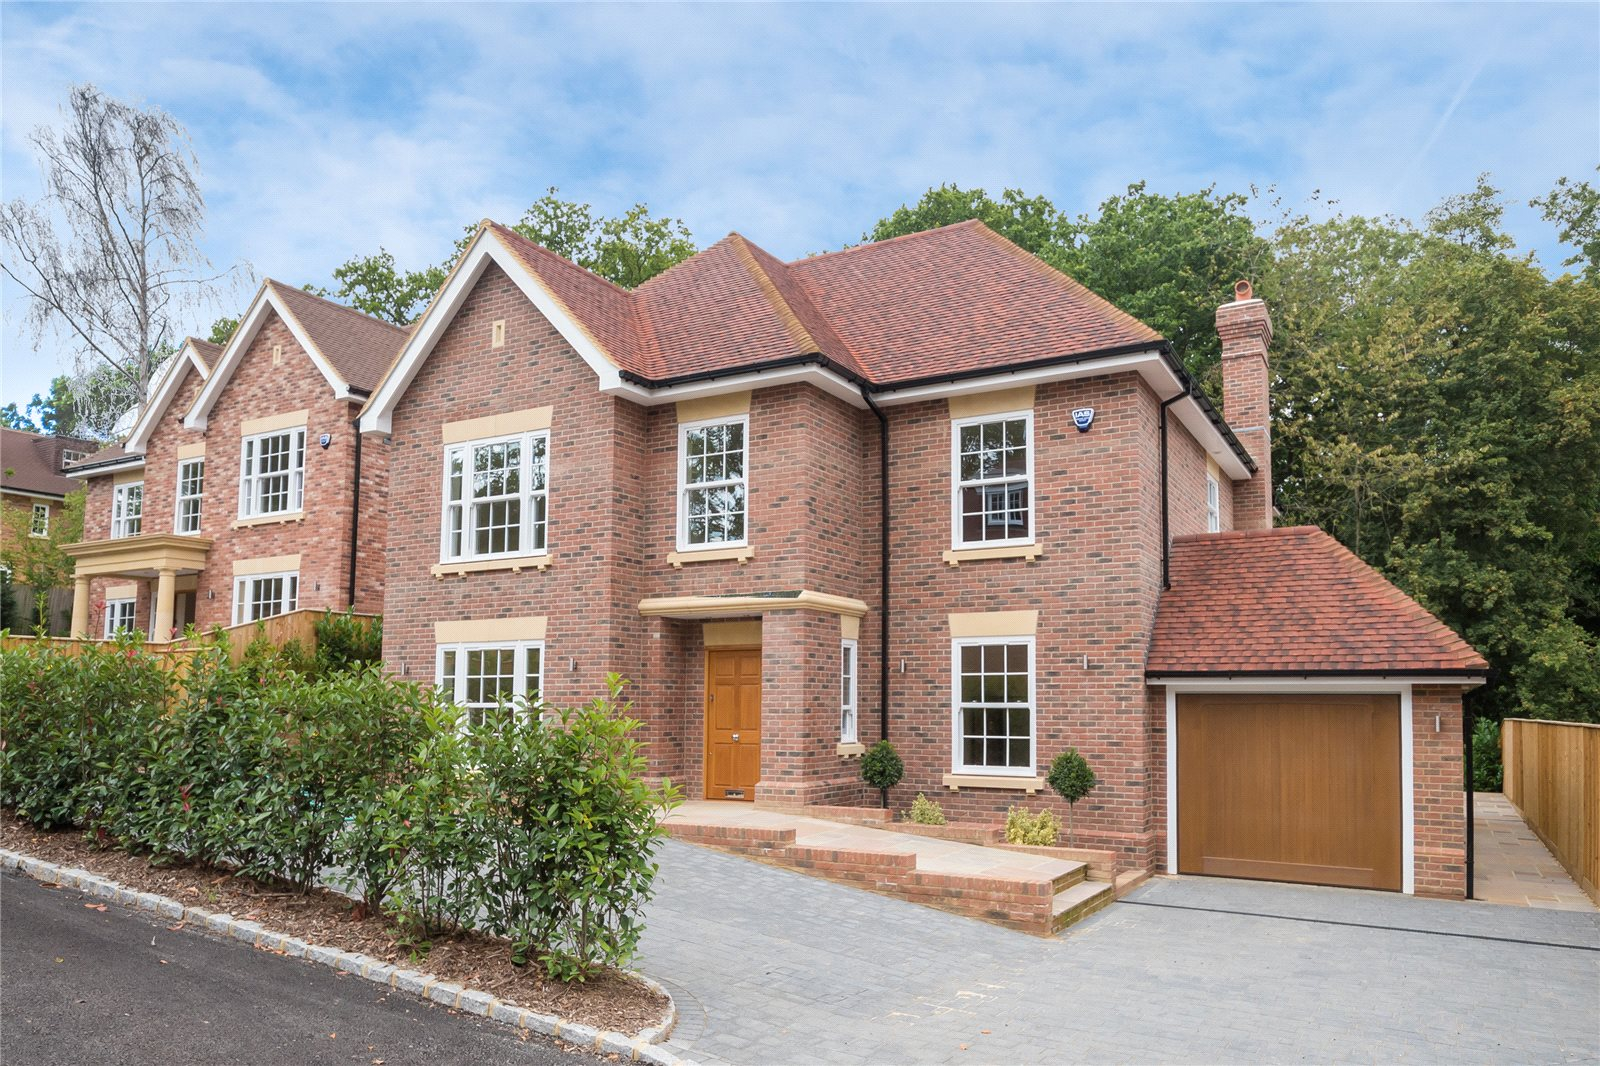 Vivienda unifamiliar por un Venta en Strawberry Hill, Gerrards Cross, Buckinghamshire, SL9 Gerrards Cross, Inglaterra